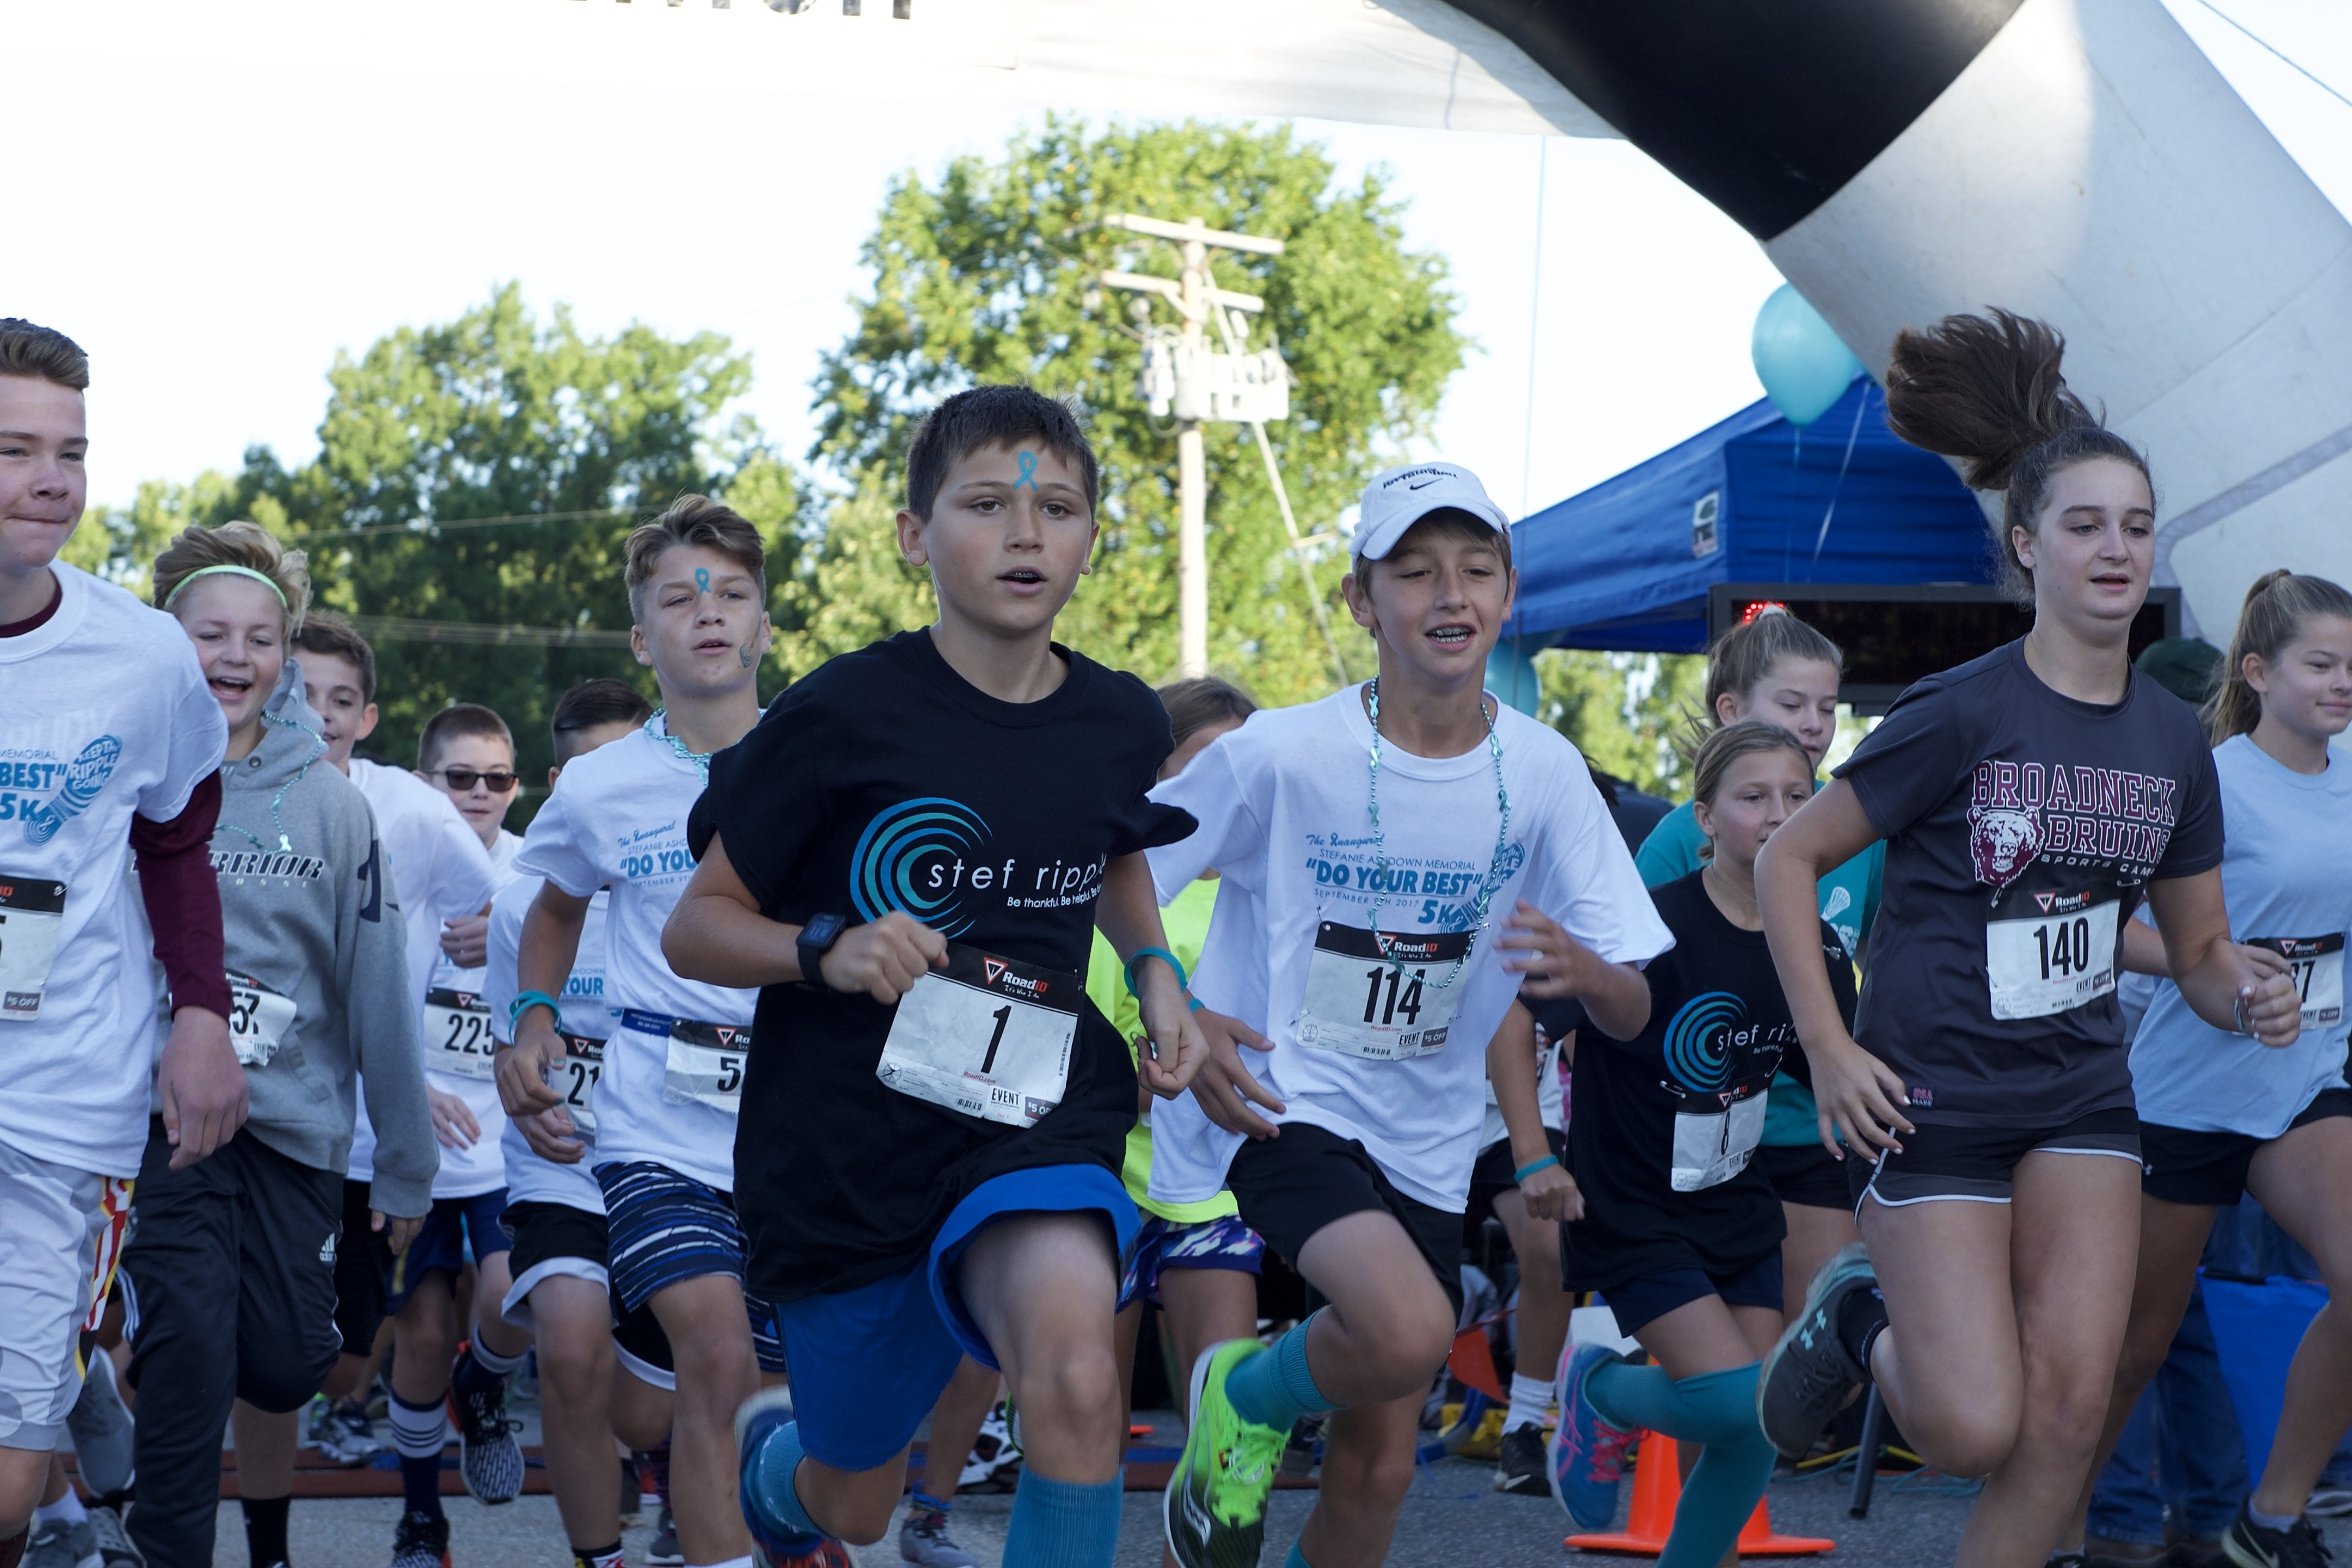 Runners at Do Your Best 5k